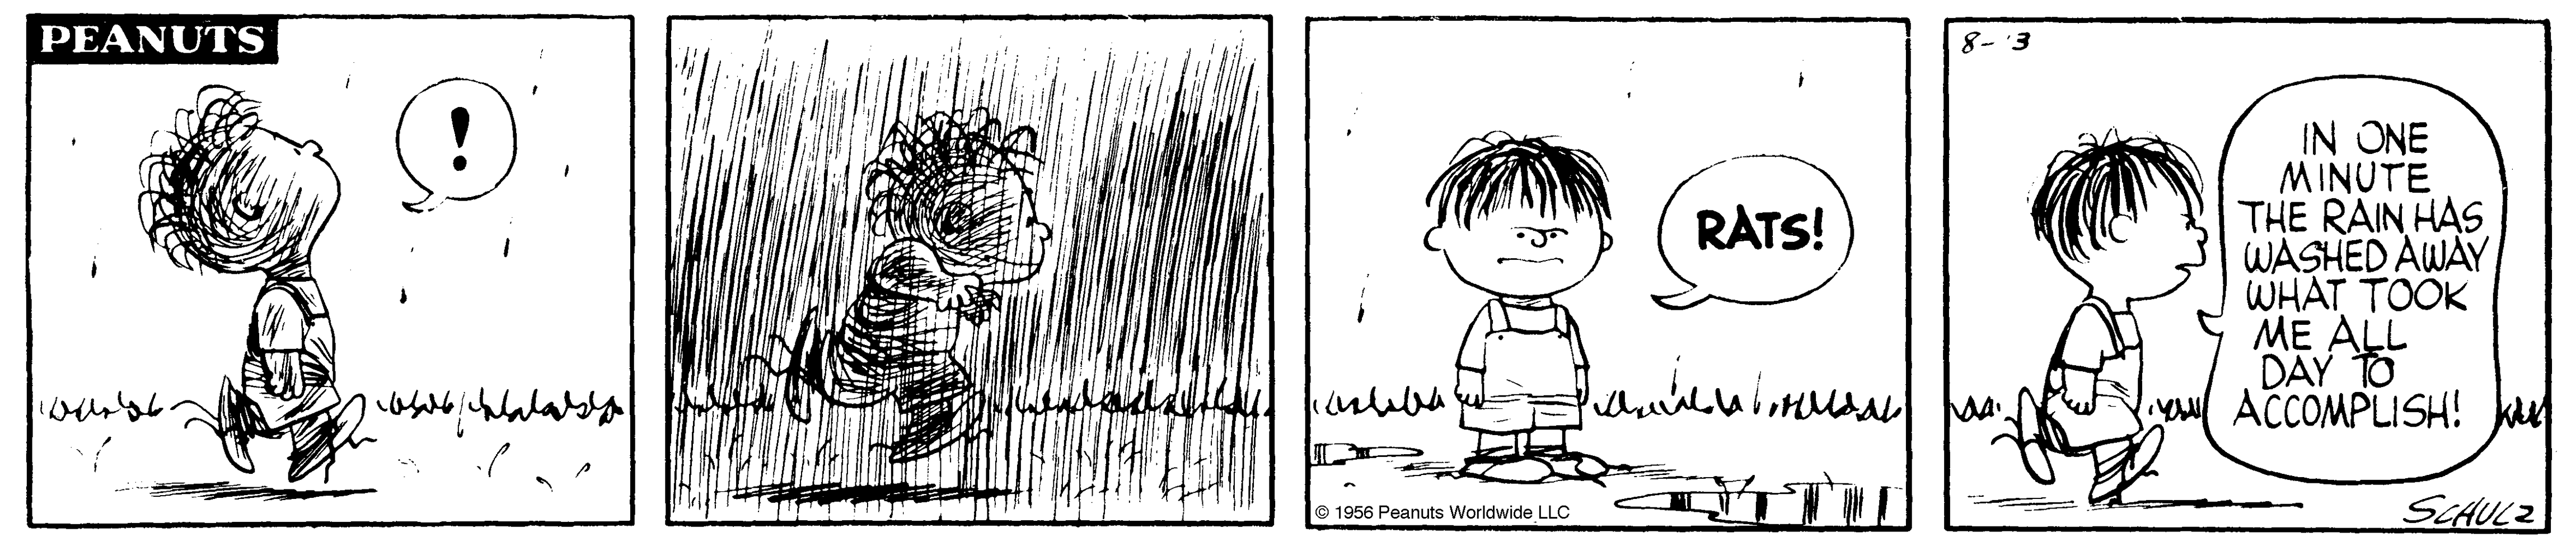 A comic strip of a boy running through a dust cloud and another boy standing in front of a puddle.